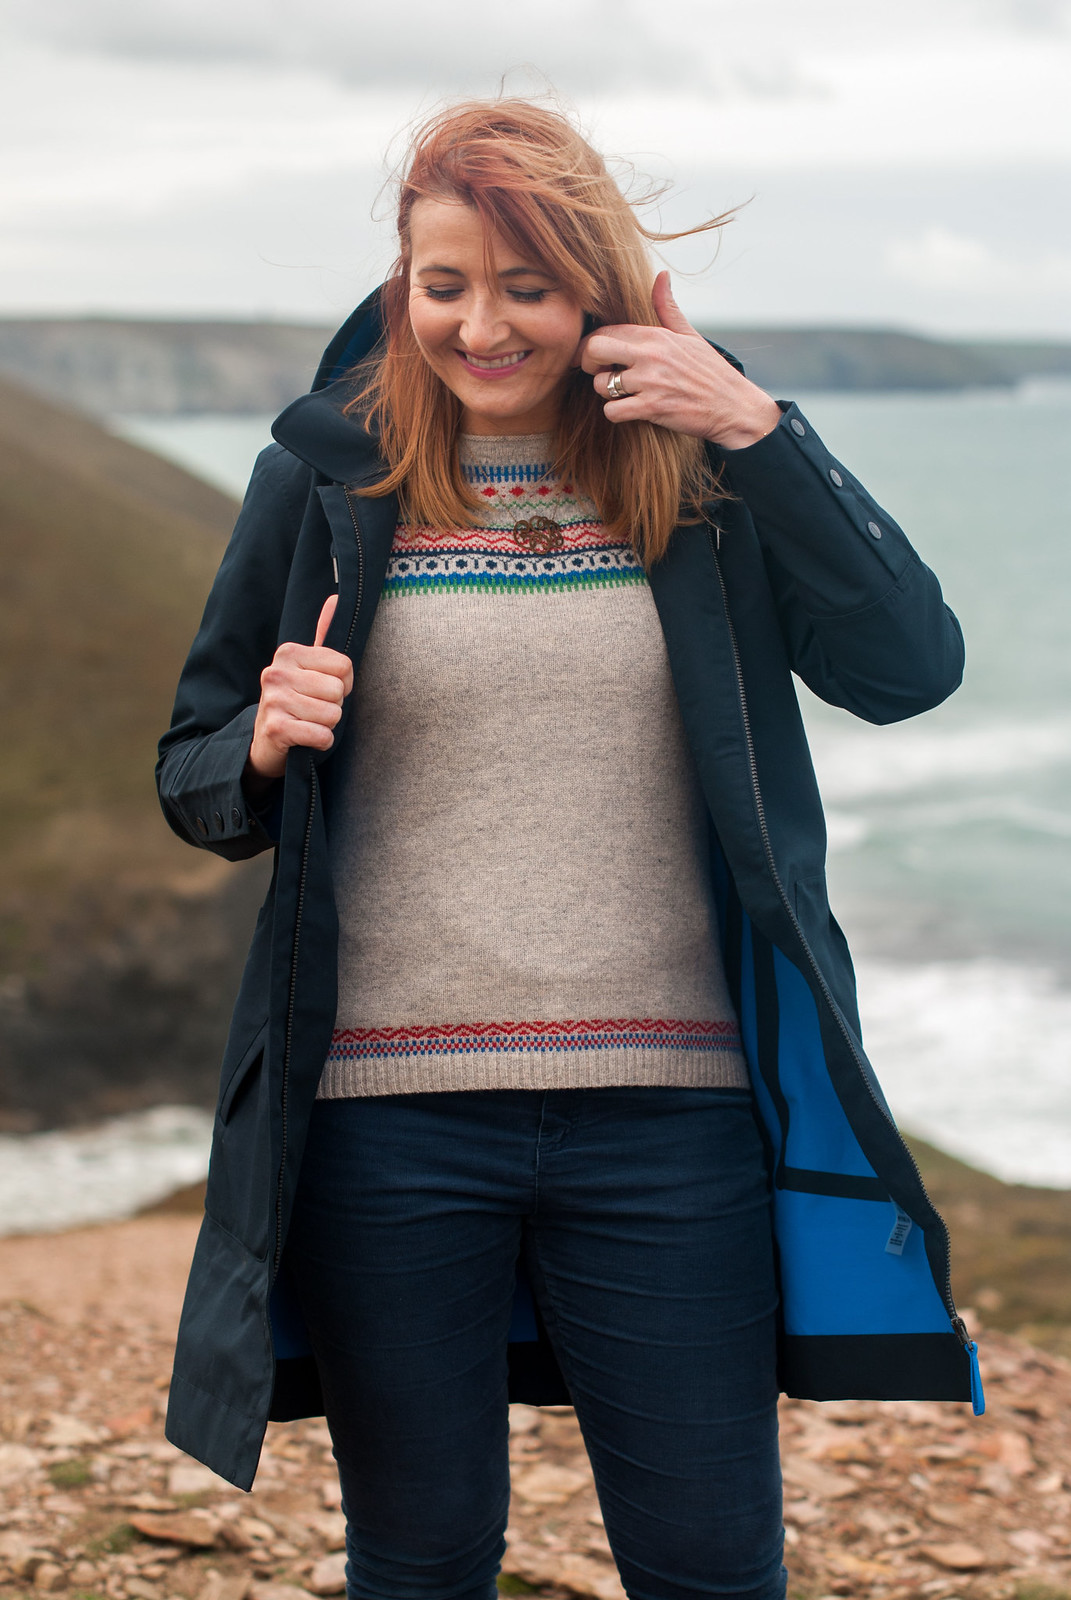 an autumn outfit for walking in poldark country